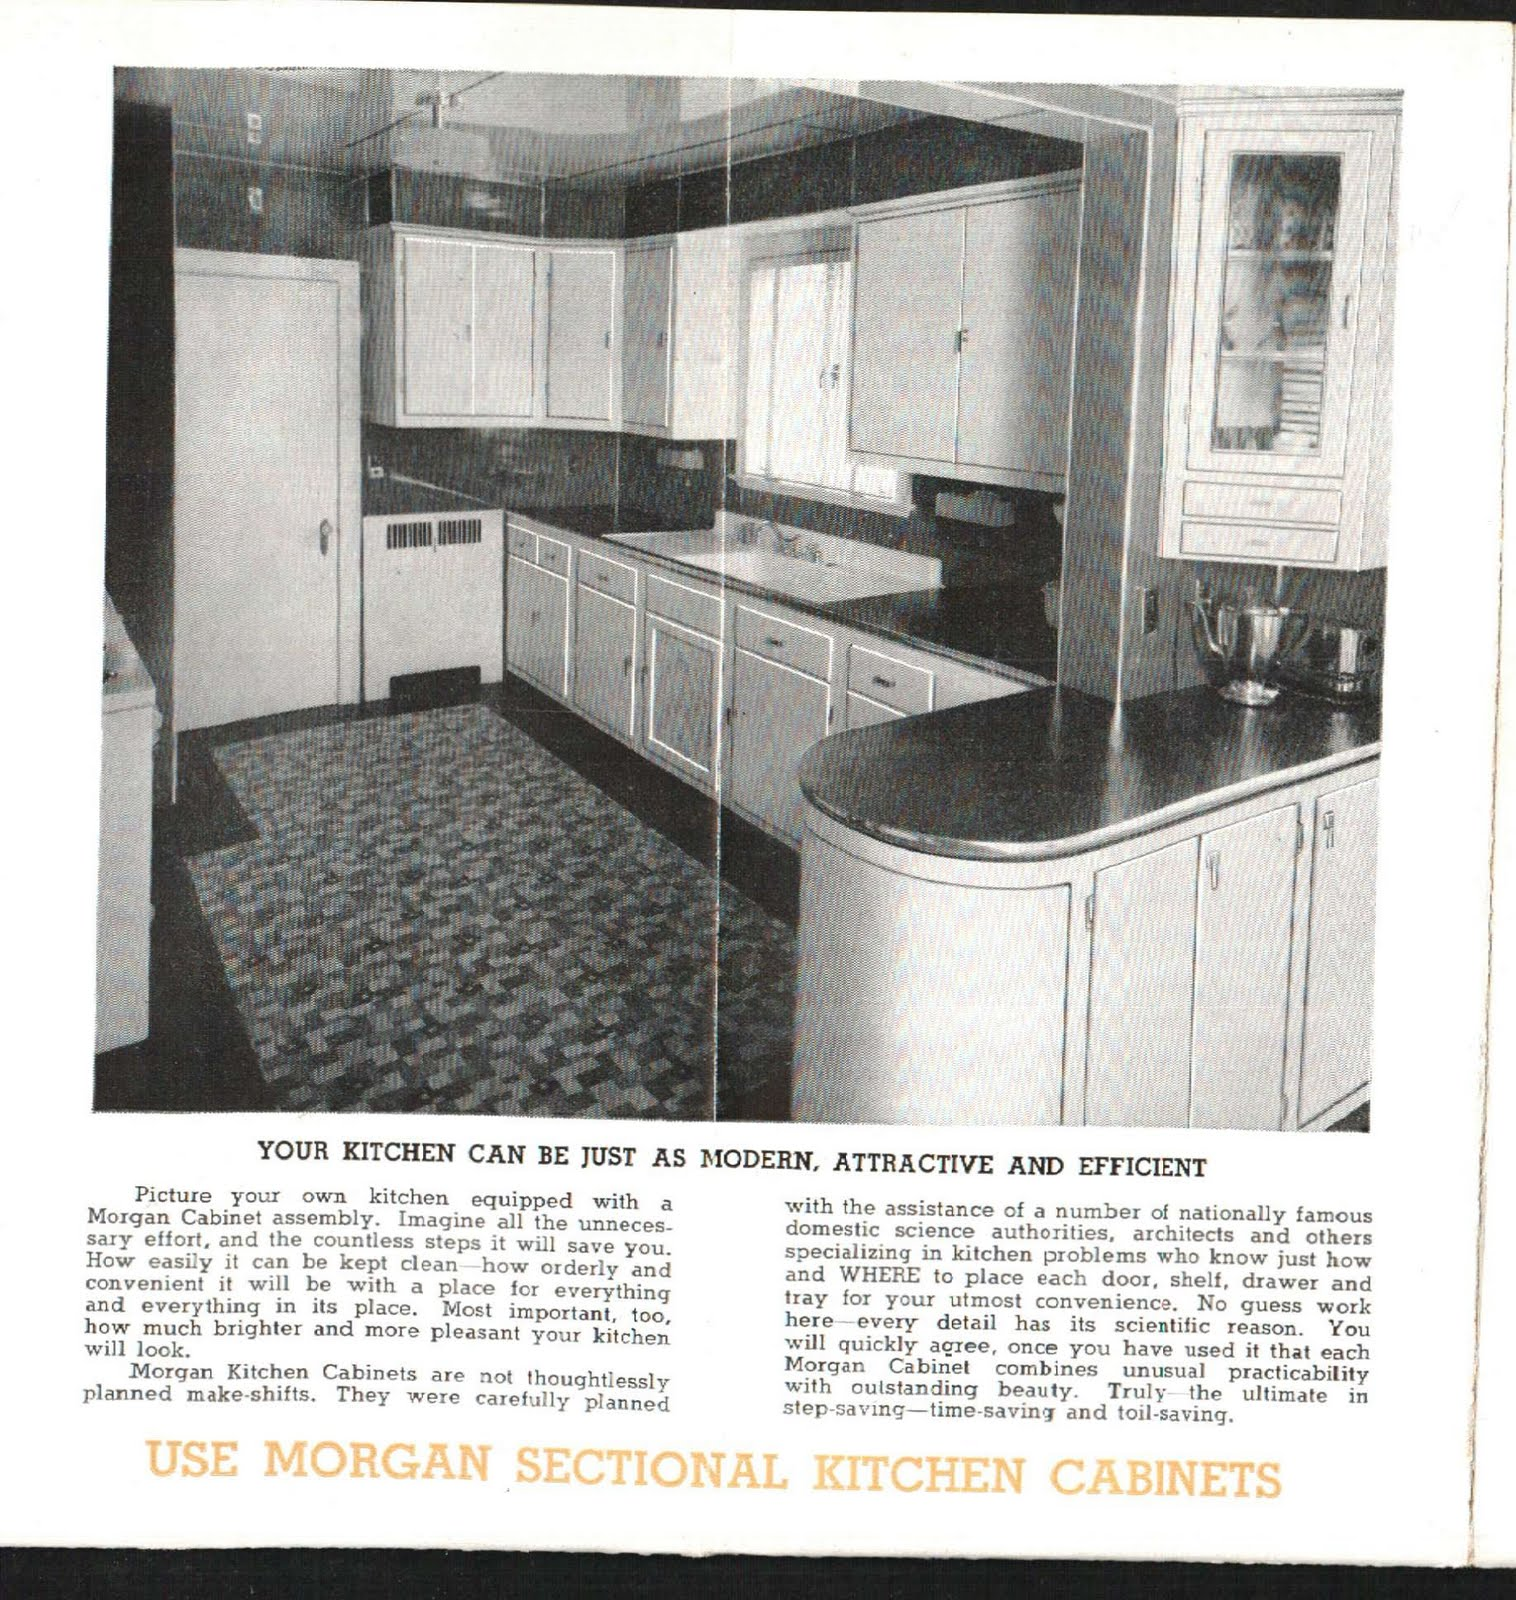 These Are Some Beautiful Kitchen Cabinets From The 1938 Circular. The  Wonderful Thing About These Cabinets Is That Many Still Exist Attesting To  The ...